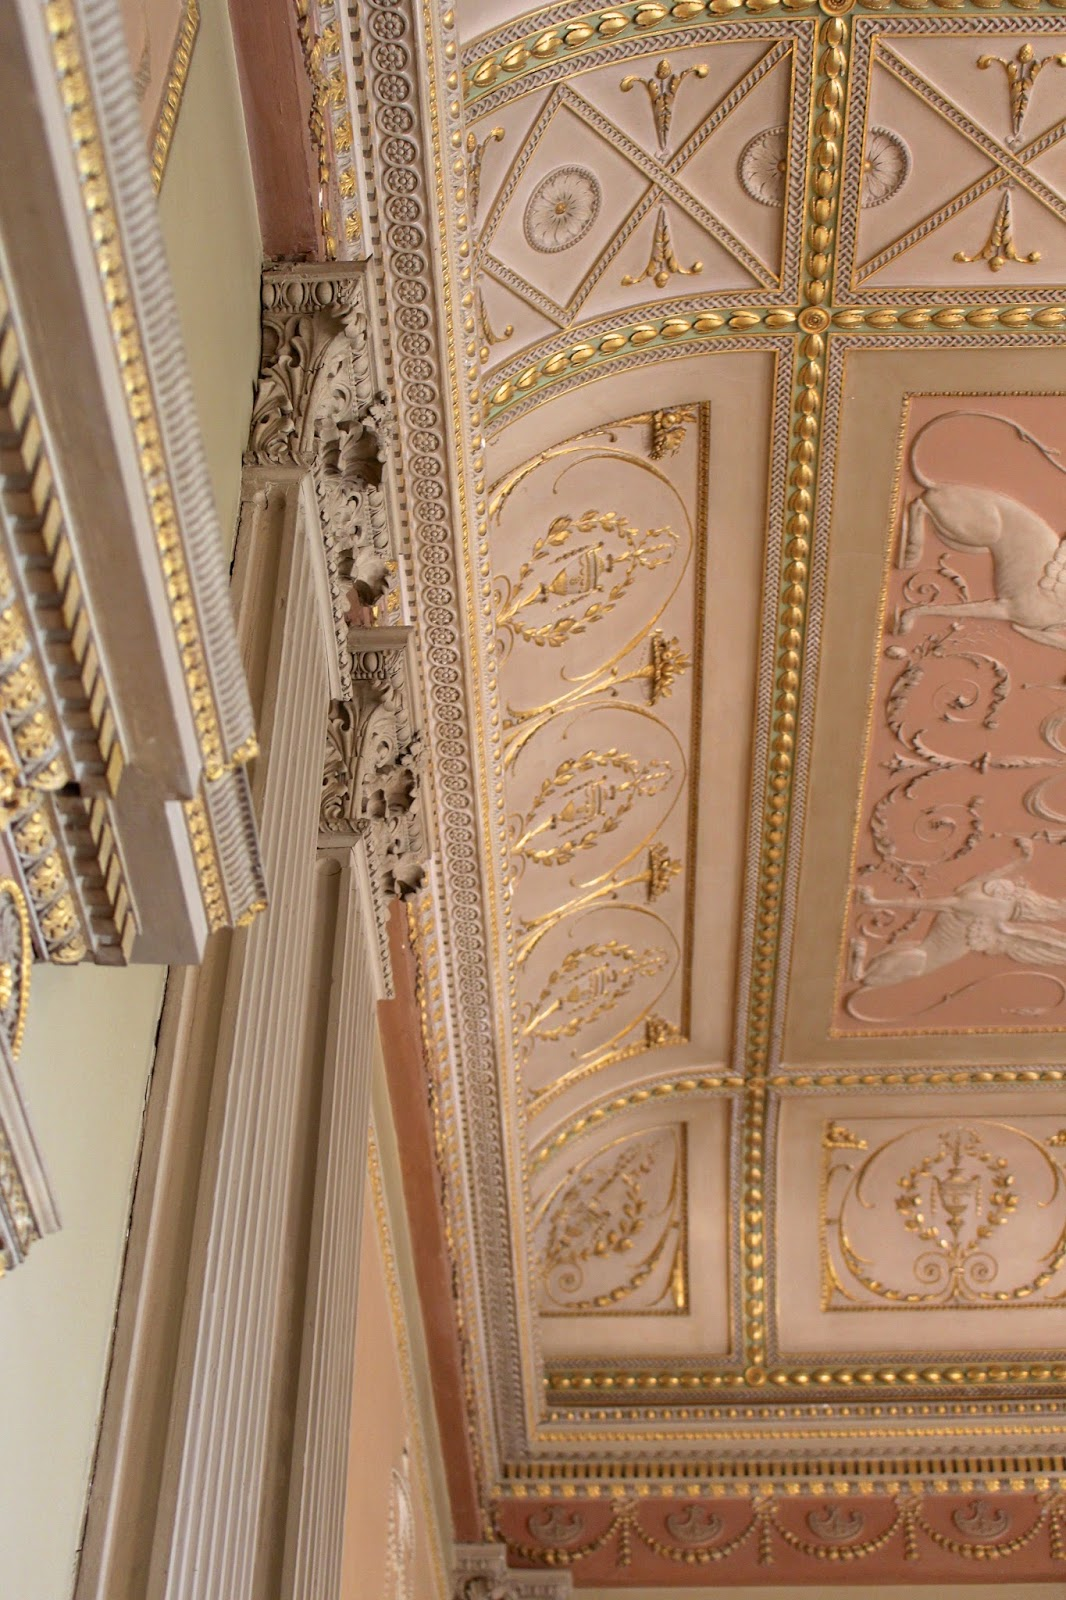 basildon park restoration work photography